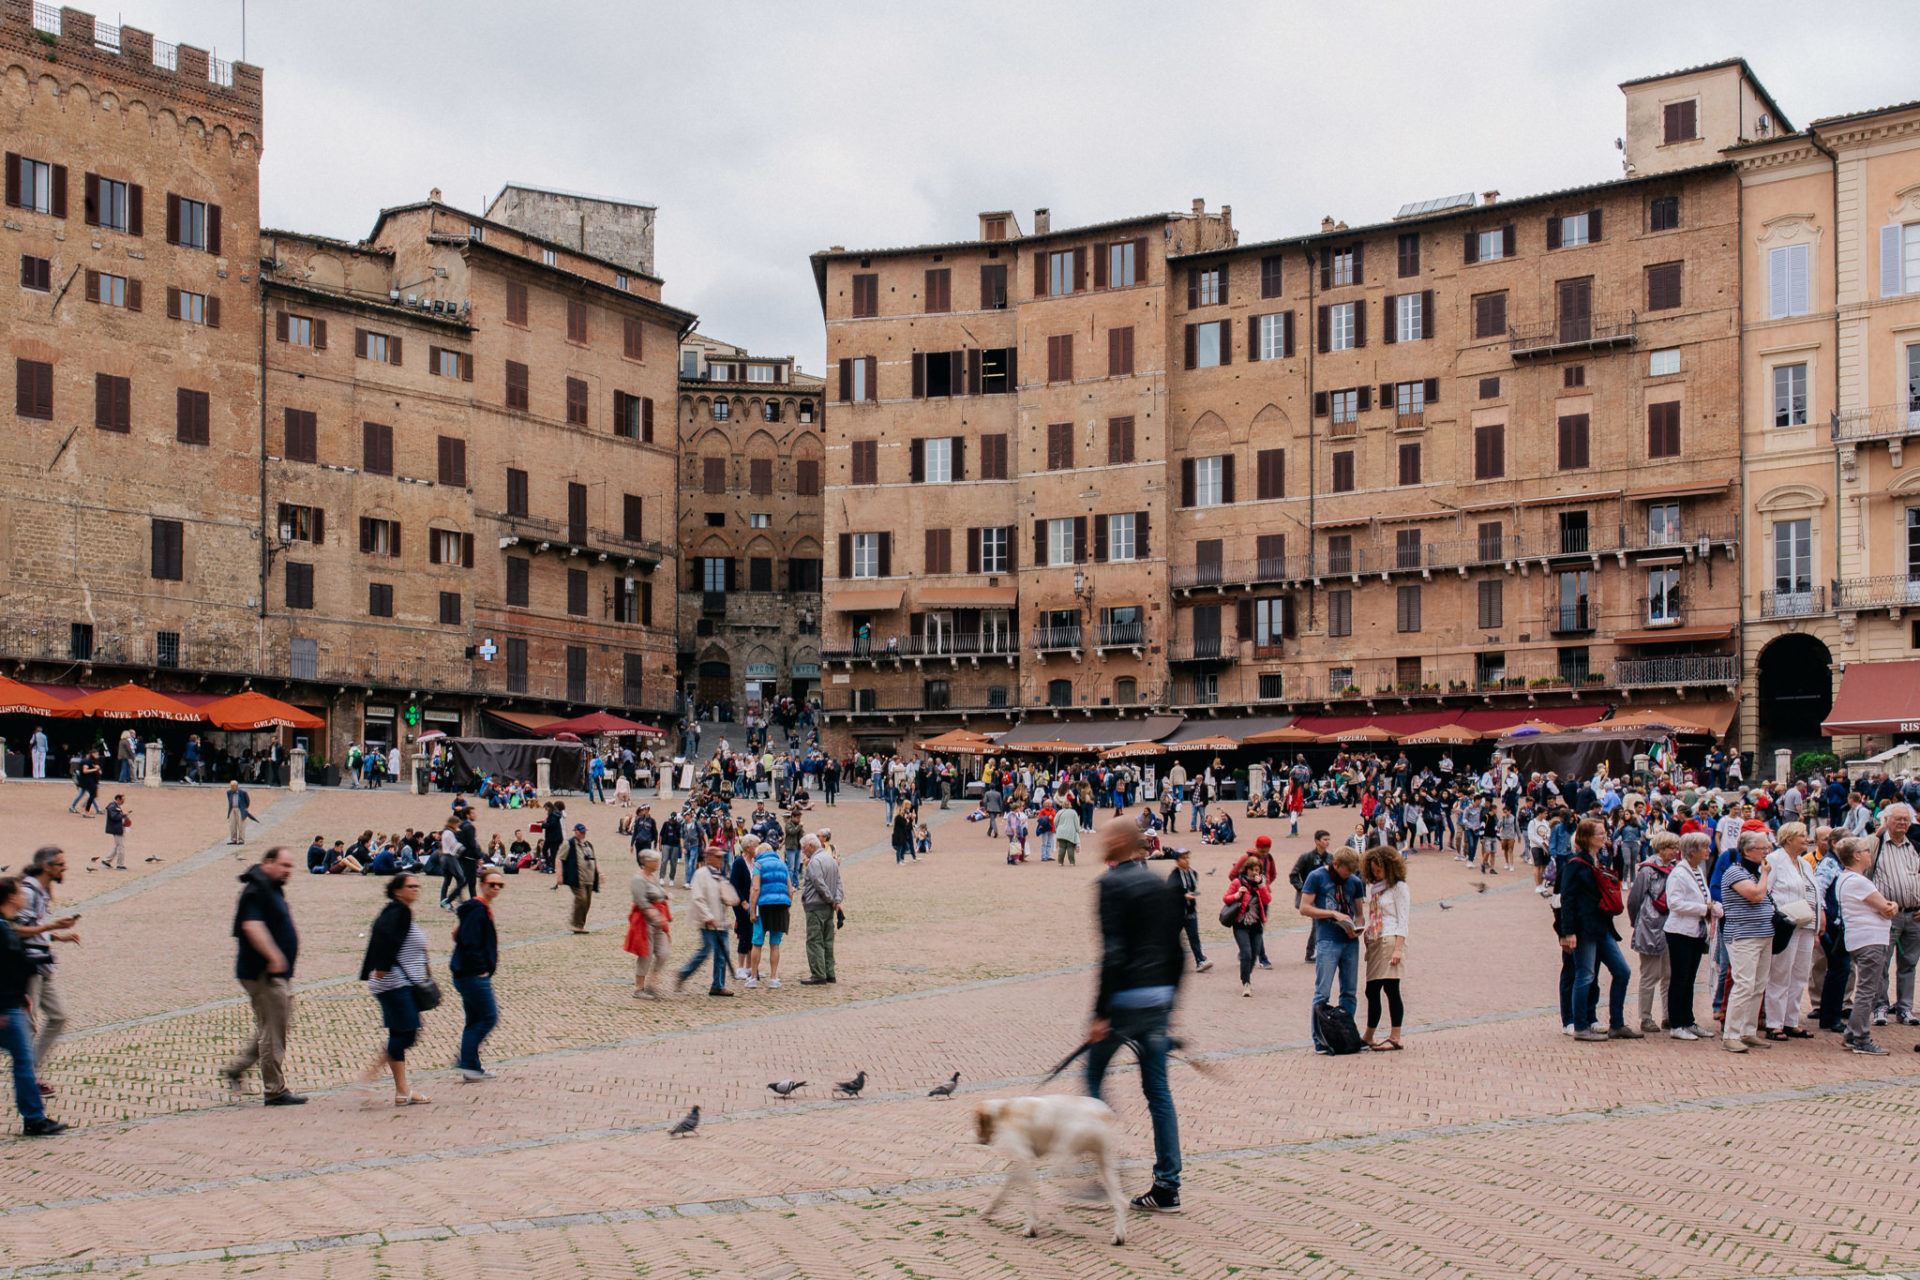 wedding photographer tuscany-italy road trip with dog-sienna town